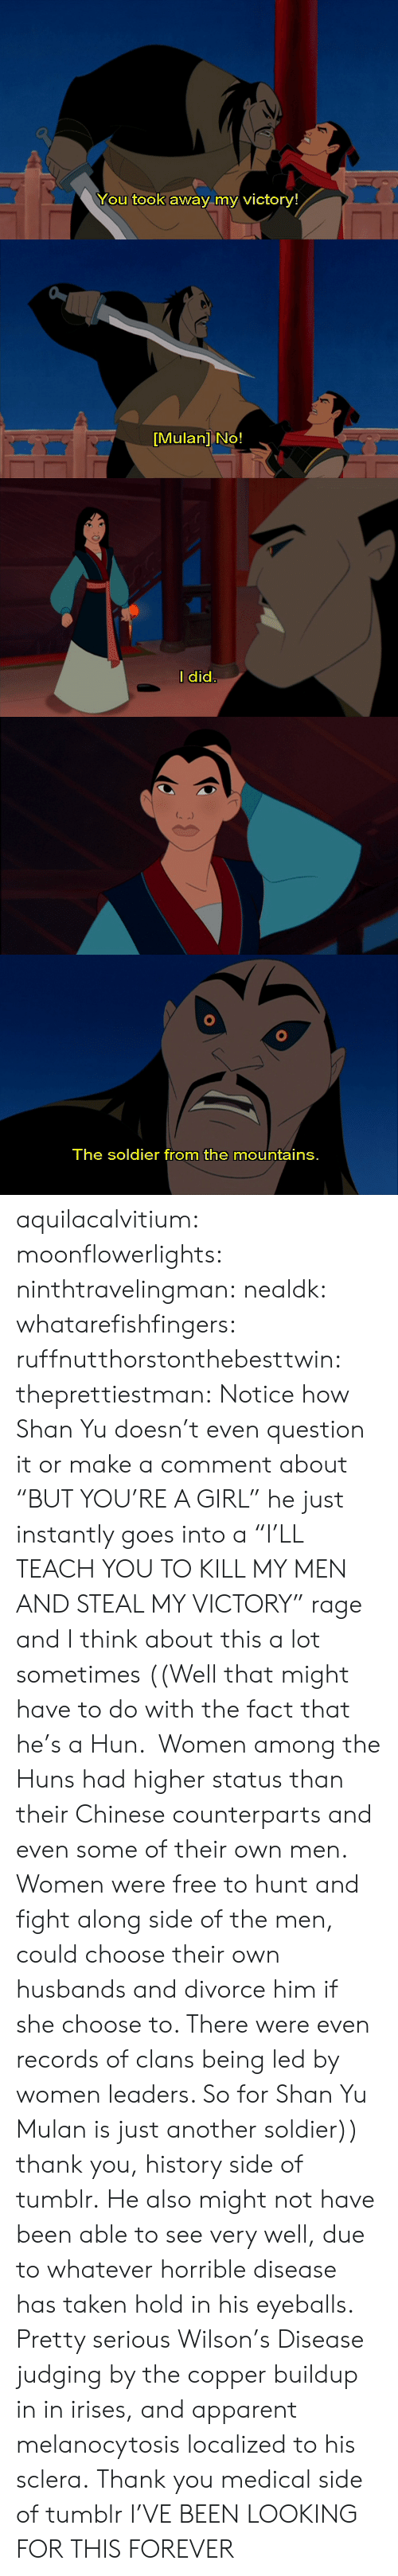 "husbands: You took away my victory!   [Mulan] No!   l did   The soldier from the mountains. aquilacalvitium: moonflowerlights:  ninthtravelingman:  nealdk:  whatarefishfingers:  ruffnutthorstonthebesttwin:  theprettiestman:  Notice how Shan Yu doesn't even question it or make a comment about ""BUT YOU'RE A GIRL"" he just instantly goes into a ""I'LL TEACH YOU TO KILL MY MEN AND STEAL MY VICTORY"" rage and I think about this a lot sometimes  ((Well that might have to do with the fact that he's a Hun.  Women among the Huns had higher status than their Chinese counterparts and even some of their own men. Women were free to hunt and fight along side of the men, could choose their own husbands and divorce him if she choose to. There were even records of clans being led by women leaders. So for Shan Yu Mulan is just another soldier))  thank you, history side of tumblr.  He also might not have been able to see very well, due to whatever horrible disease has taken hold in his eyeballs.  Pretty serious Wilson's Disease judging by the copper buildup in in irises, and apparent melanocytosis localized to his sclera.  Thank you medical side of tumblr   I'VE BEEN LOOKING FOR THIS FOREVER"